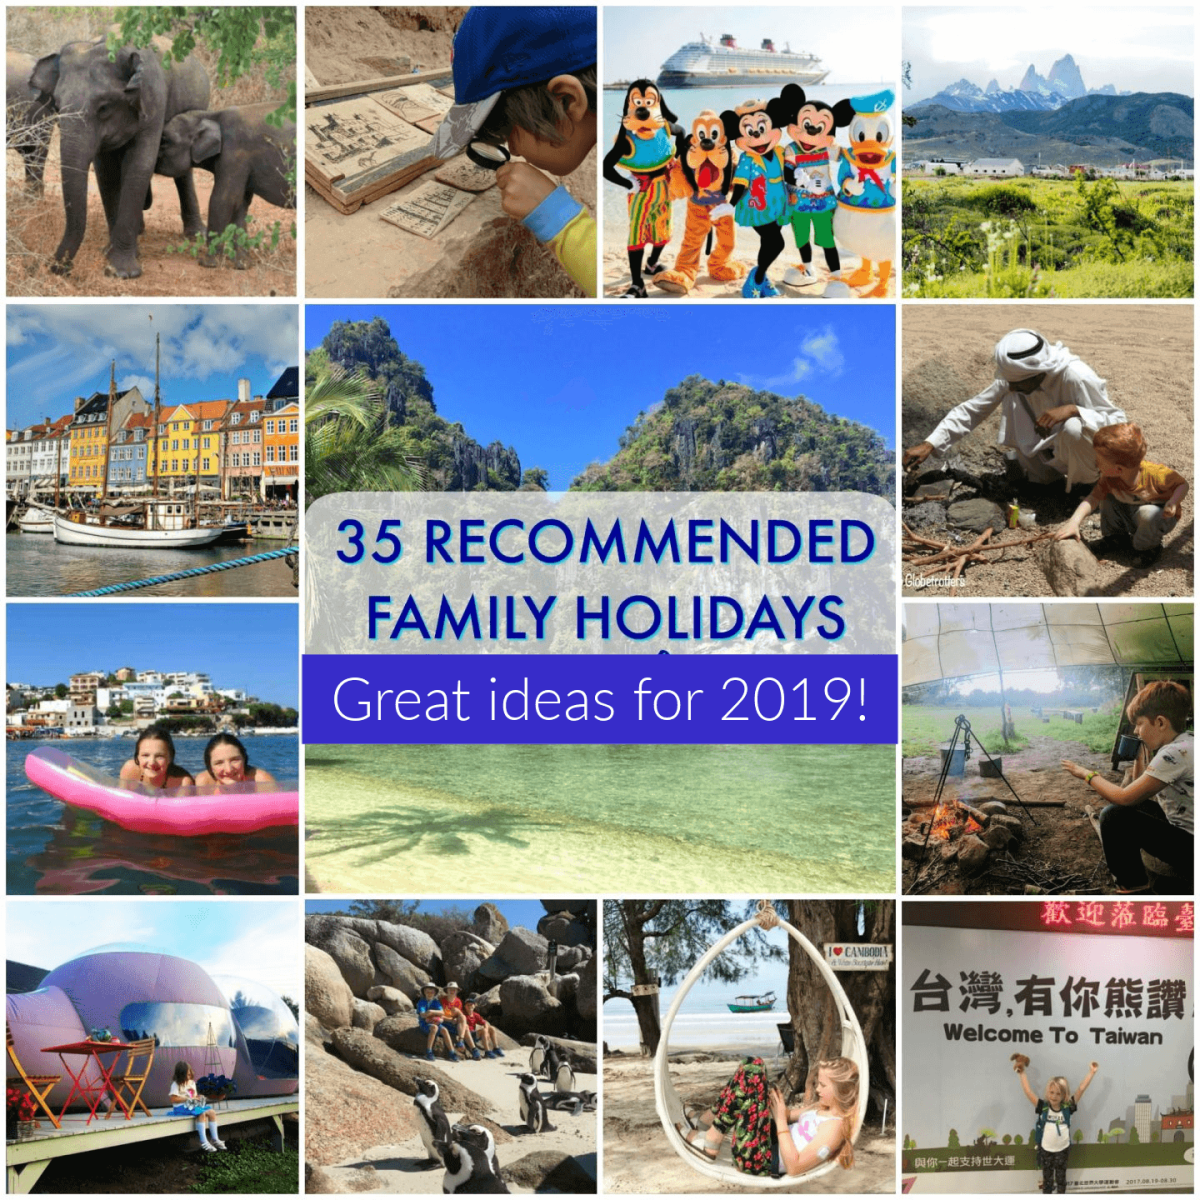 b7ee7c4329 35+ family holiday ideas for 2019 ft. top family holiday destinations